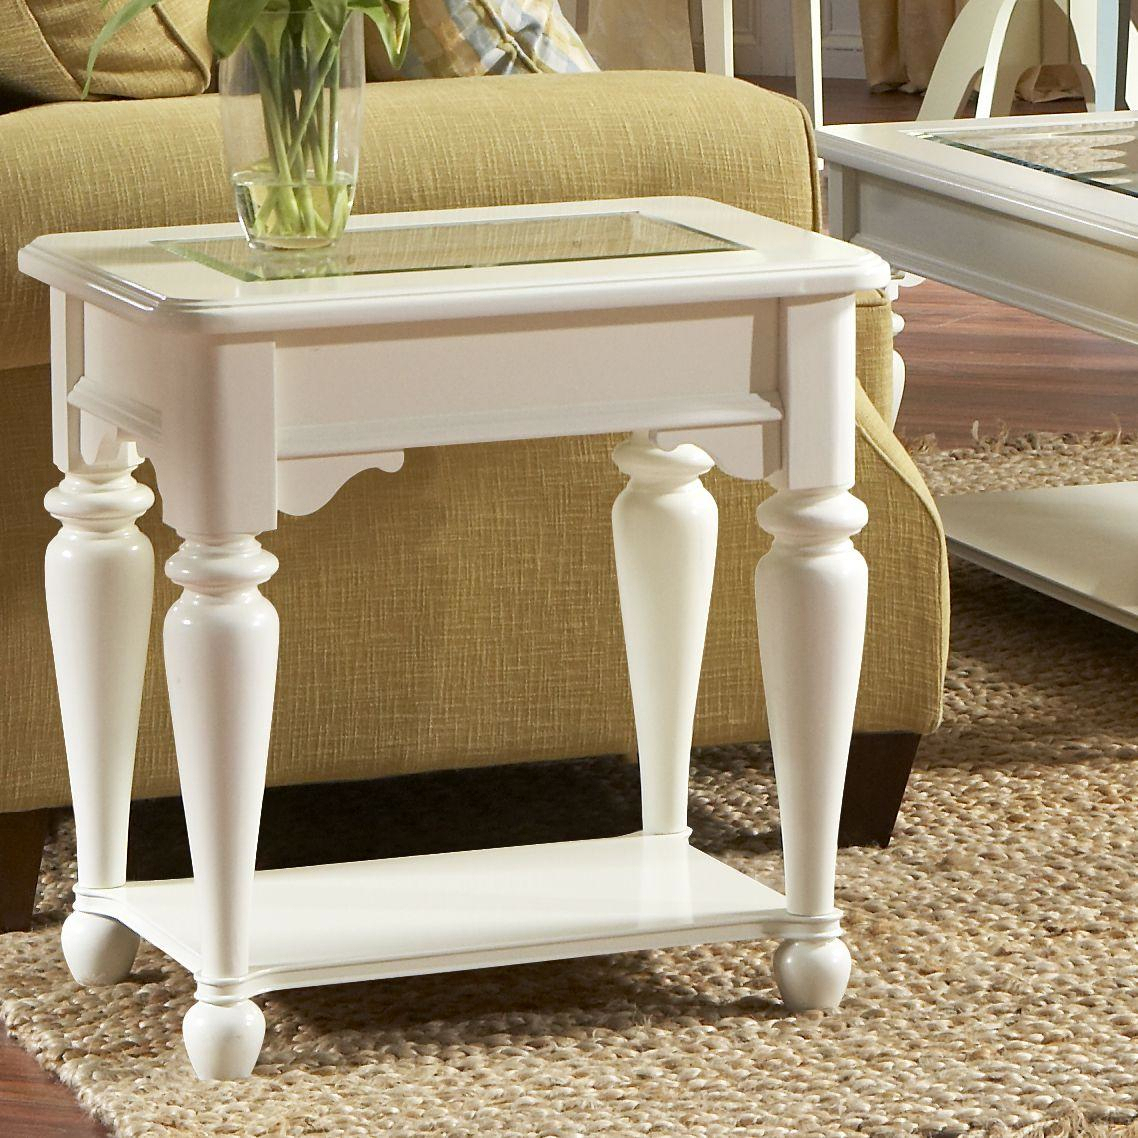 Living room side tables furniture for small space living room roy home design for White end tables for living room